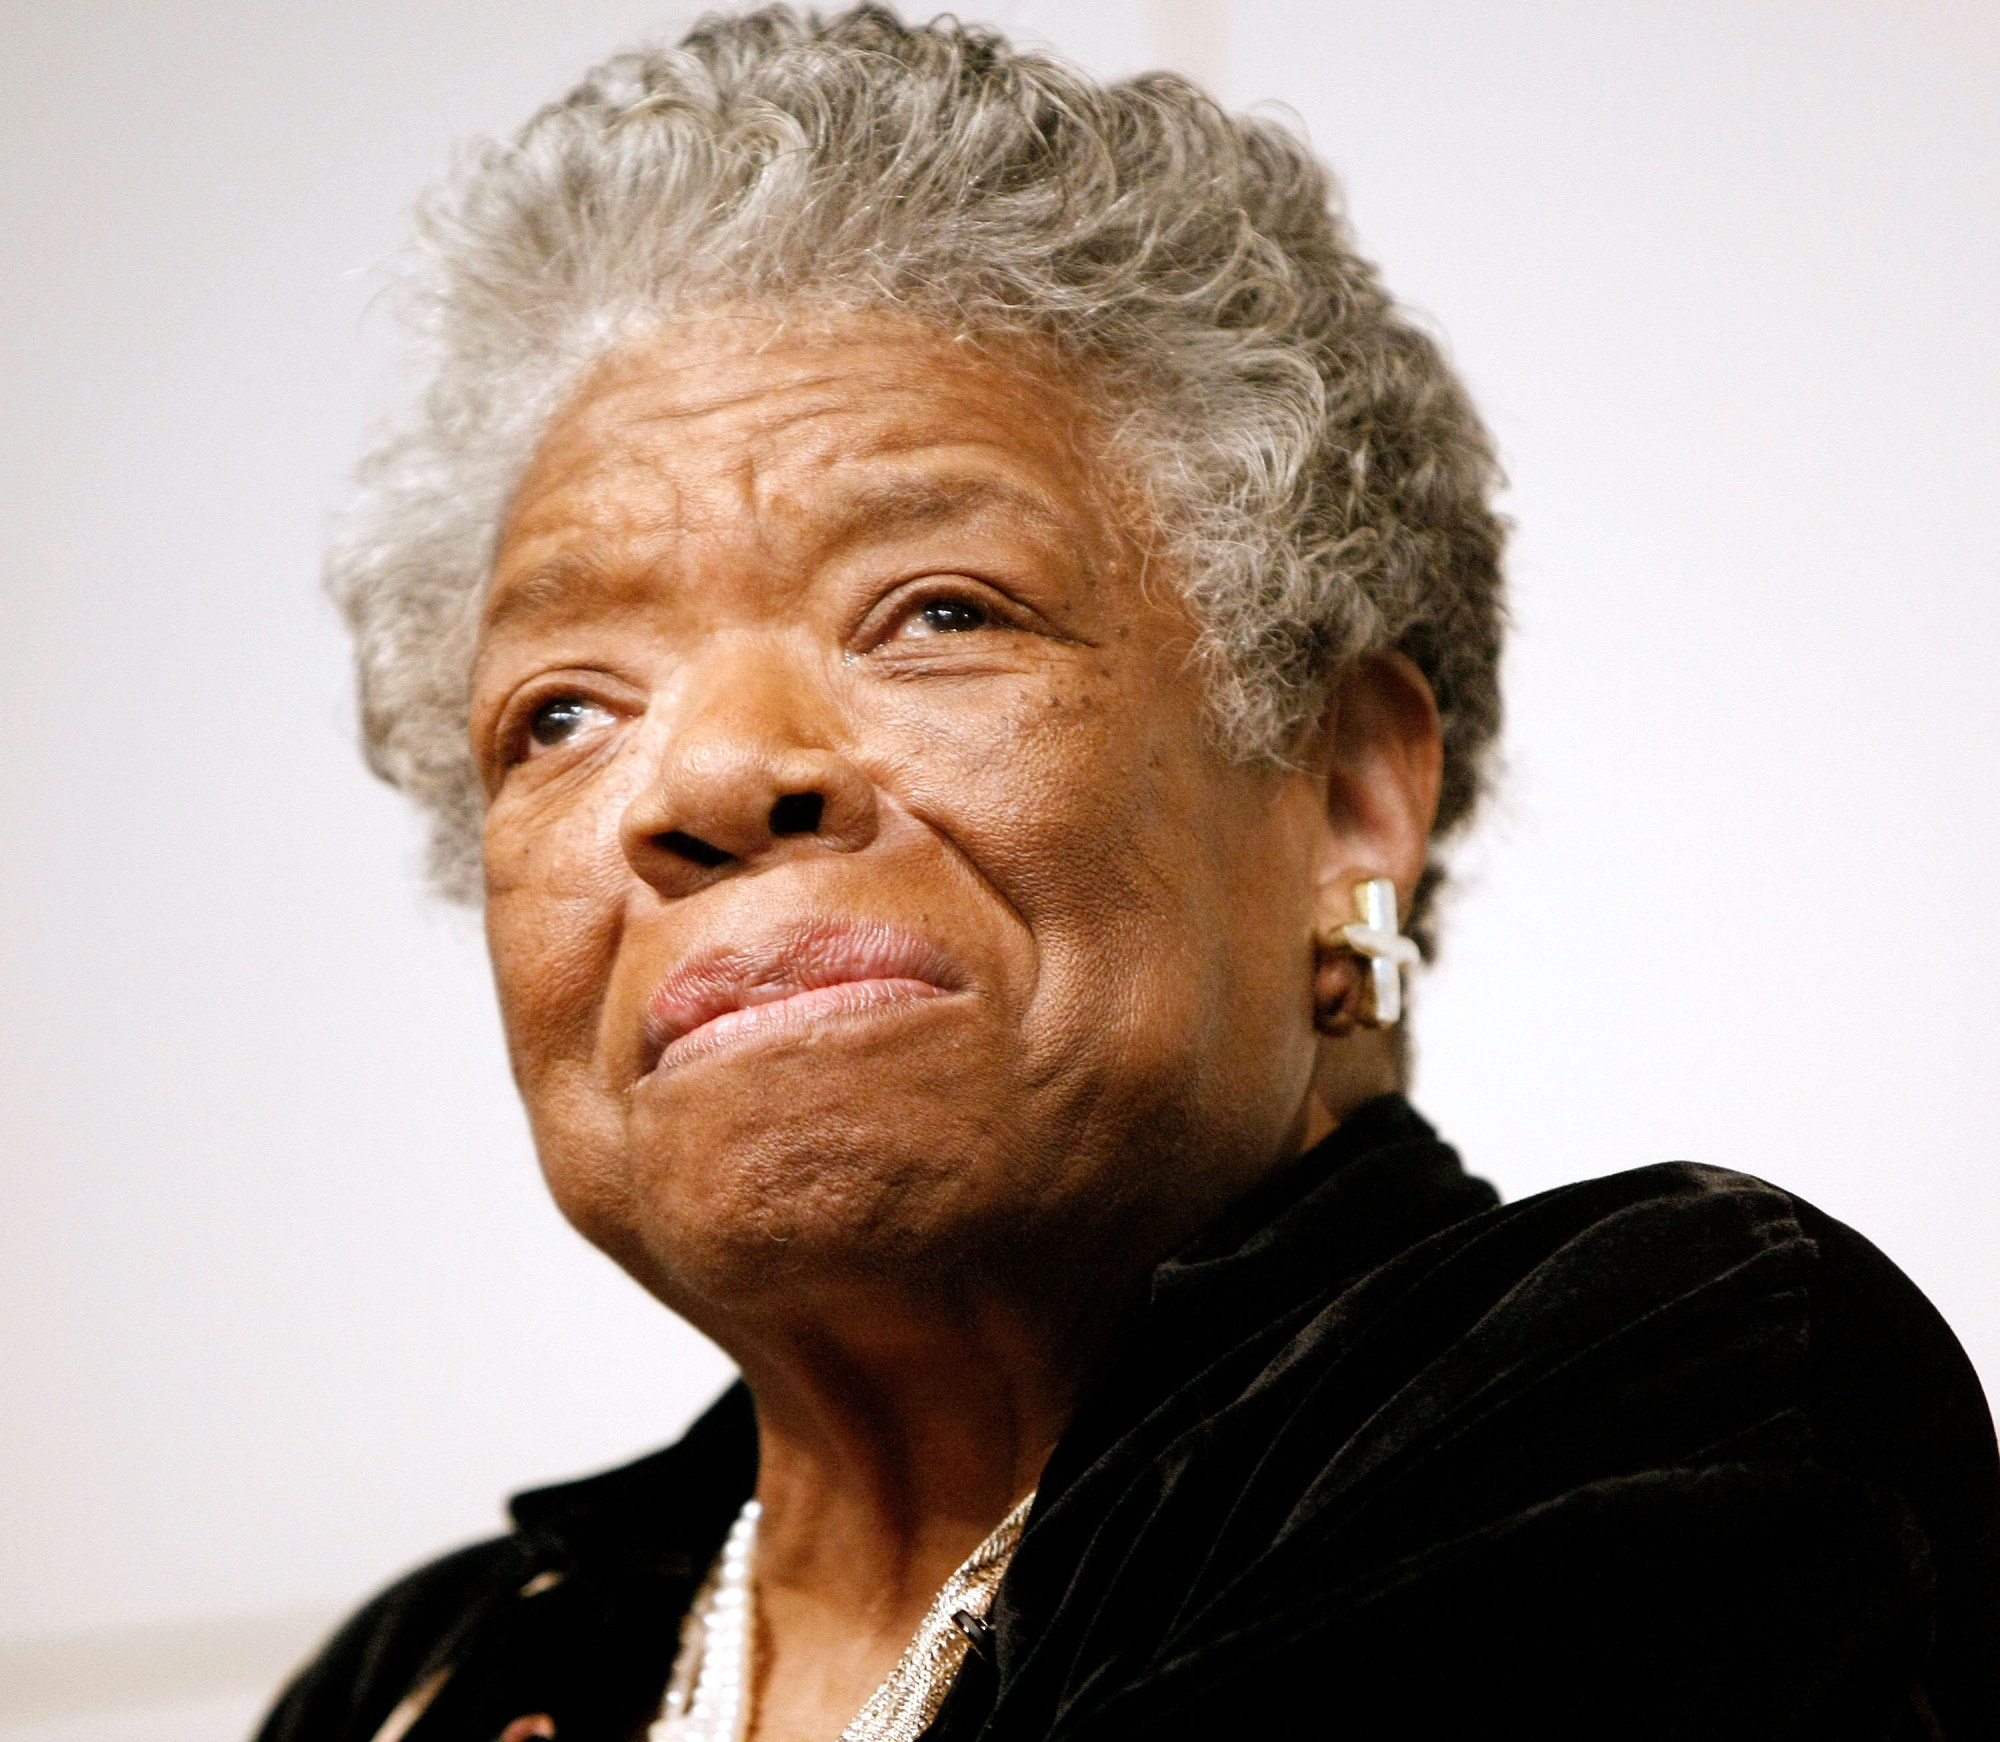 Maya Angelou Remixed Over Hip Hop Beats for 'Caged Bird ... Maya Angelou As A Singer